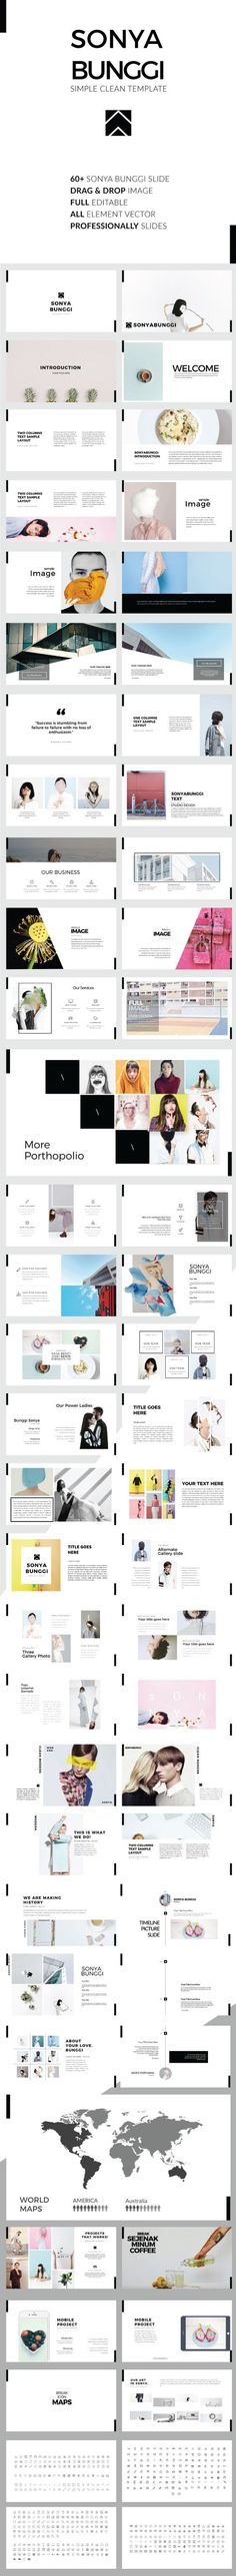 Sonya Bunggi - Simple Clean Keynote Template